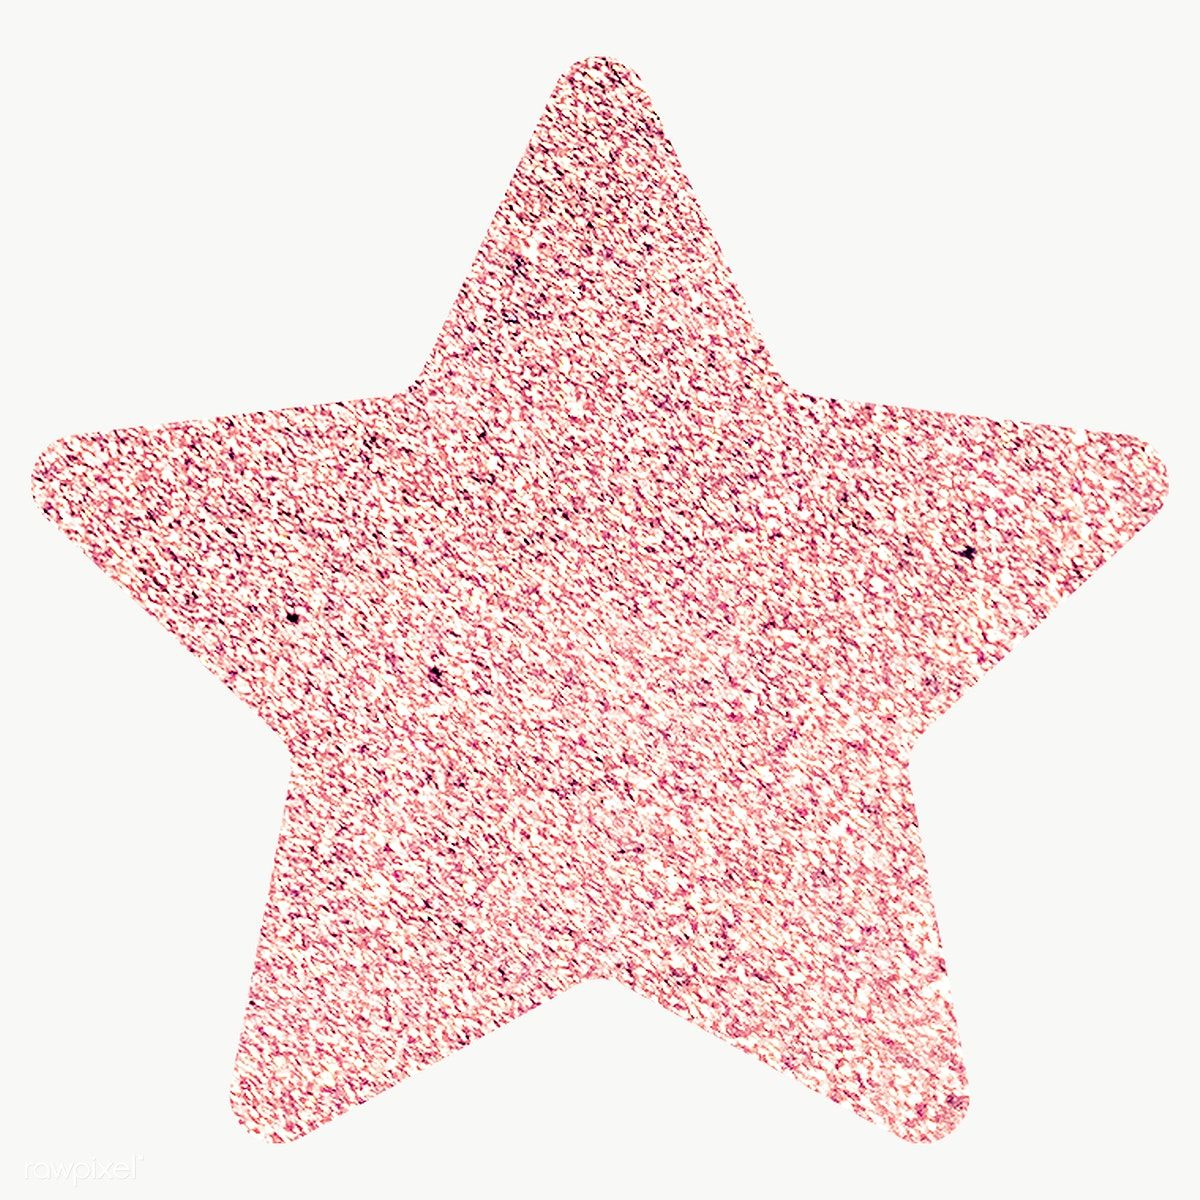 Glitter Star Sticker Transparent Png Free Image By Rawpixel Com Ningzk V Transparent Stickers Star Stickers Graphic Design Fun